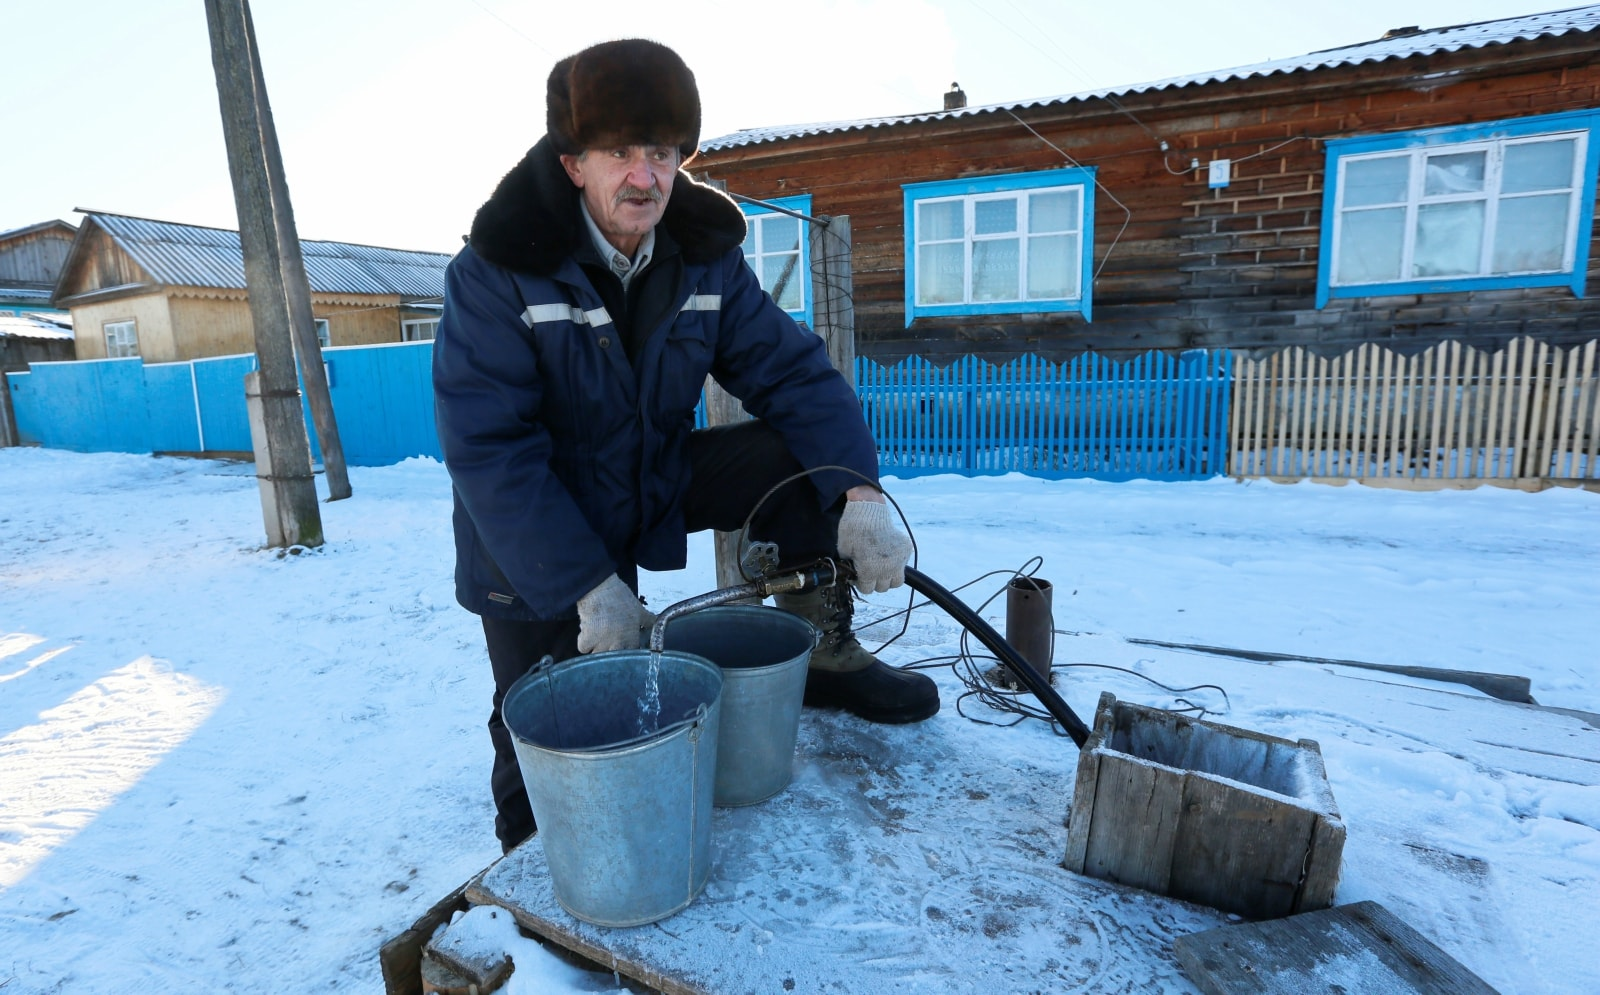 Local resident Alexander Lazarev, 69, pumps water from a street well in a Siberian settlement, which was founded as a logging camp and part of the Soviet Union's Gulag prison labour system, Tugach, southeast of Krasnoyarsk, Russia November 18, 2018. REUTERS/Ilya Naymushin